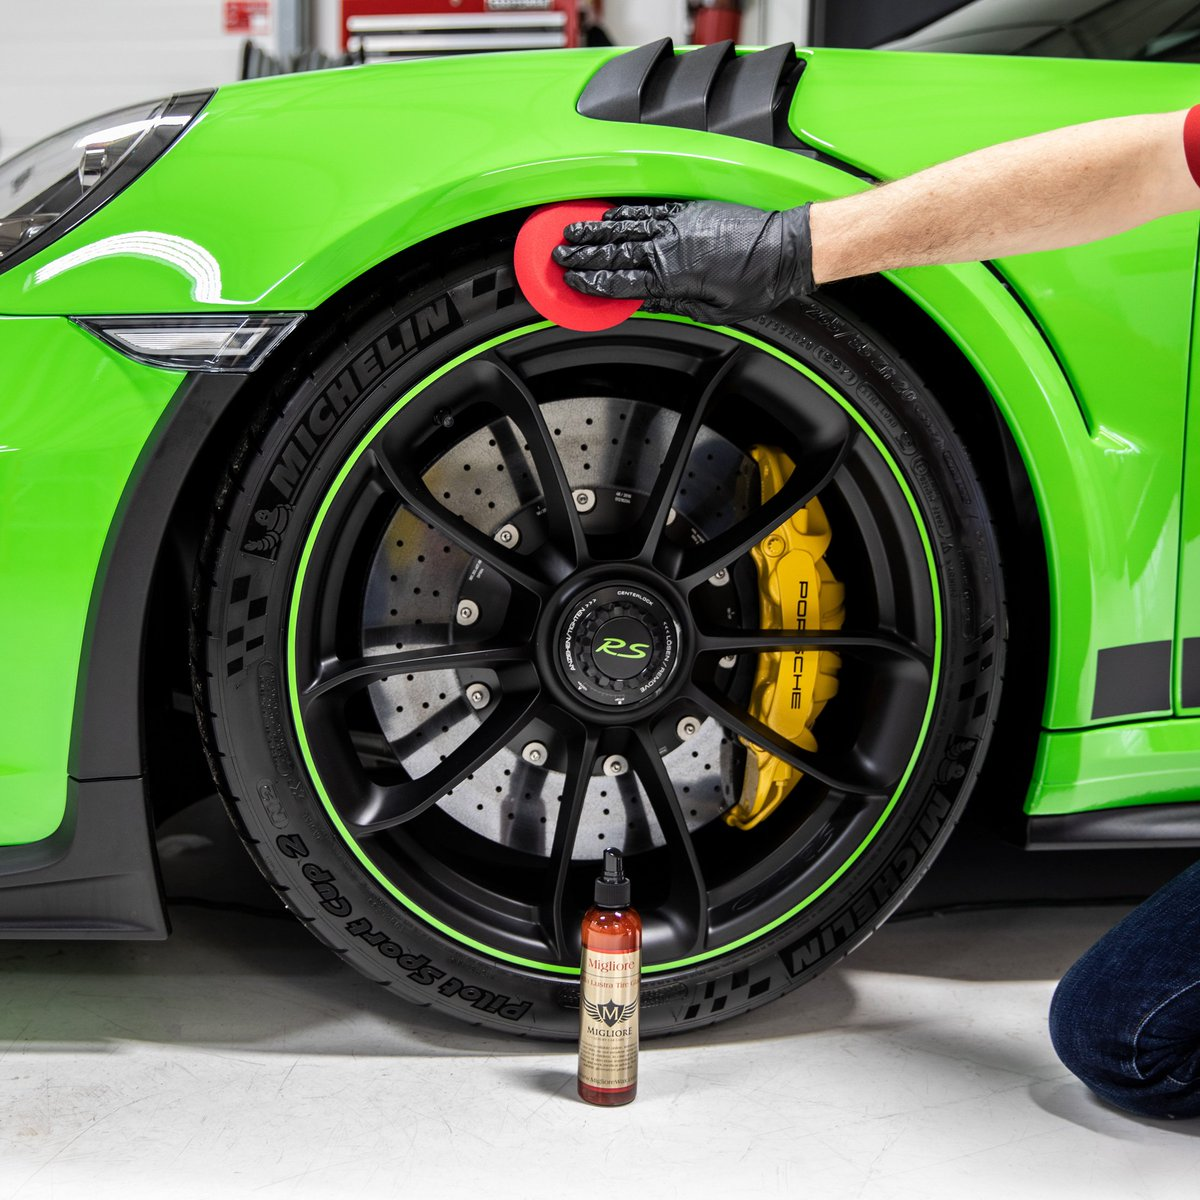 There are plenty of tire products out there but this is one you just have to try! https://bit.ly/2SGCQmJ  #migliorewax #weekend #weekendvibes #friday